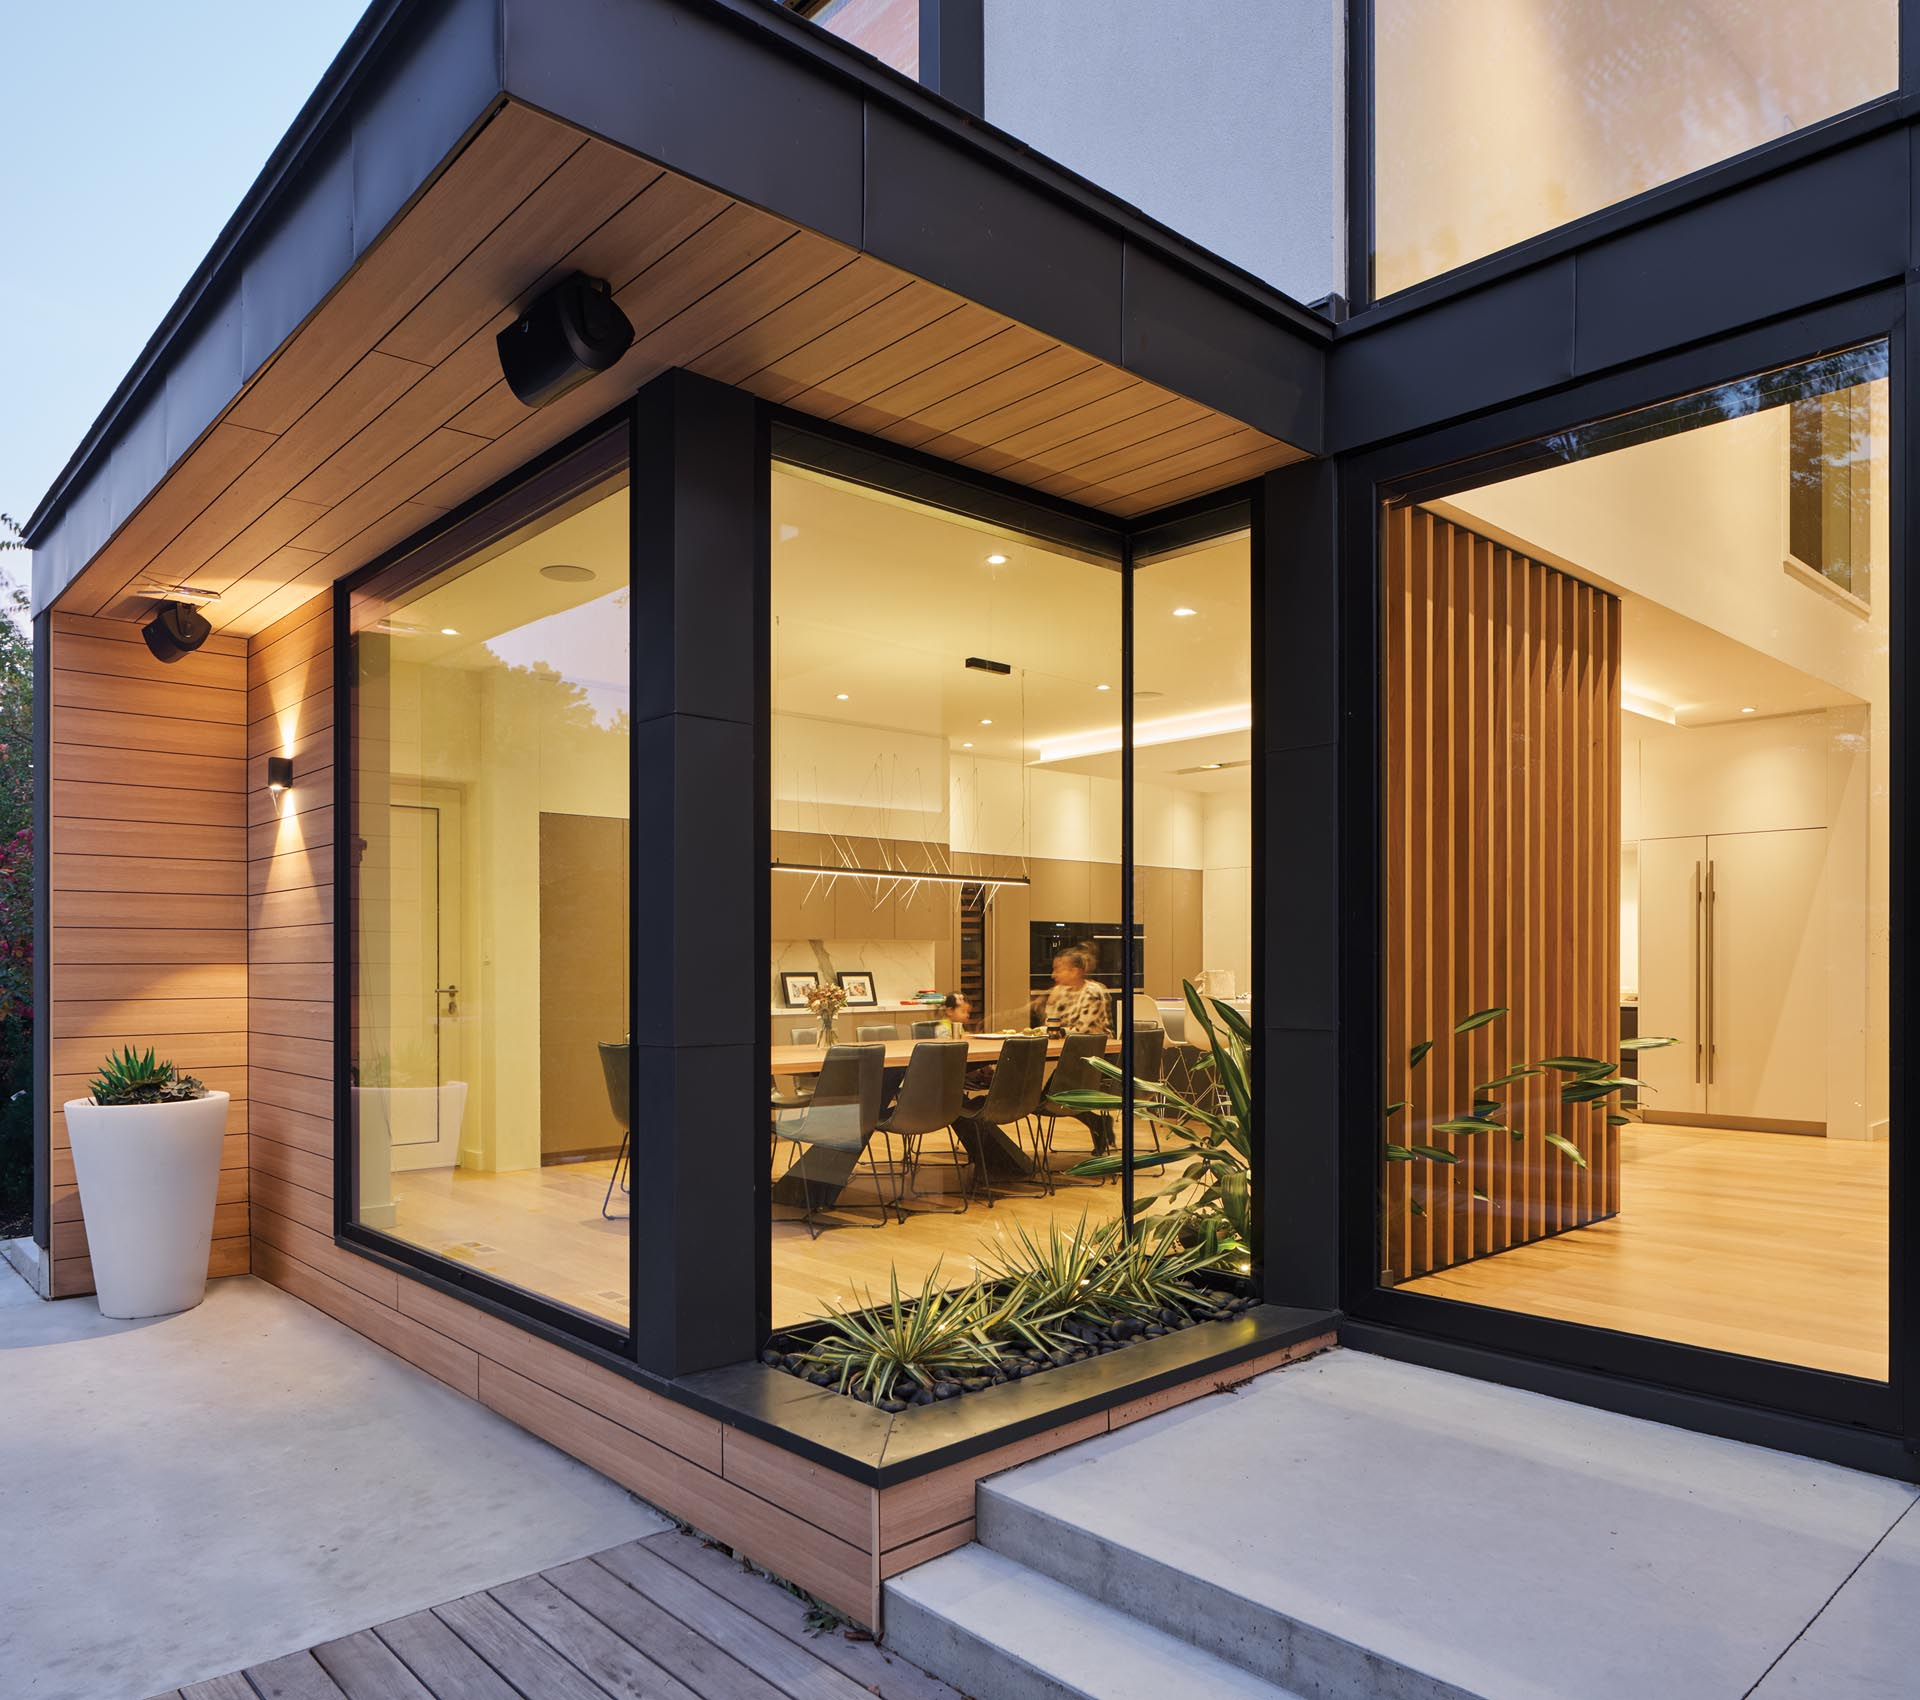 A modern house with a built-in planter, and black-framed windows and sliding glass doors.